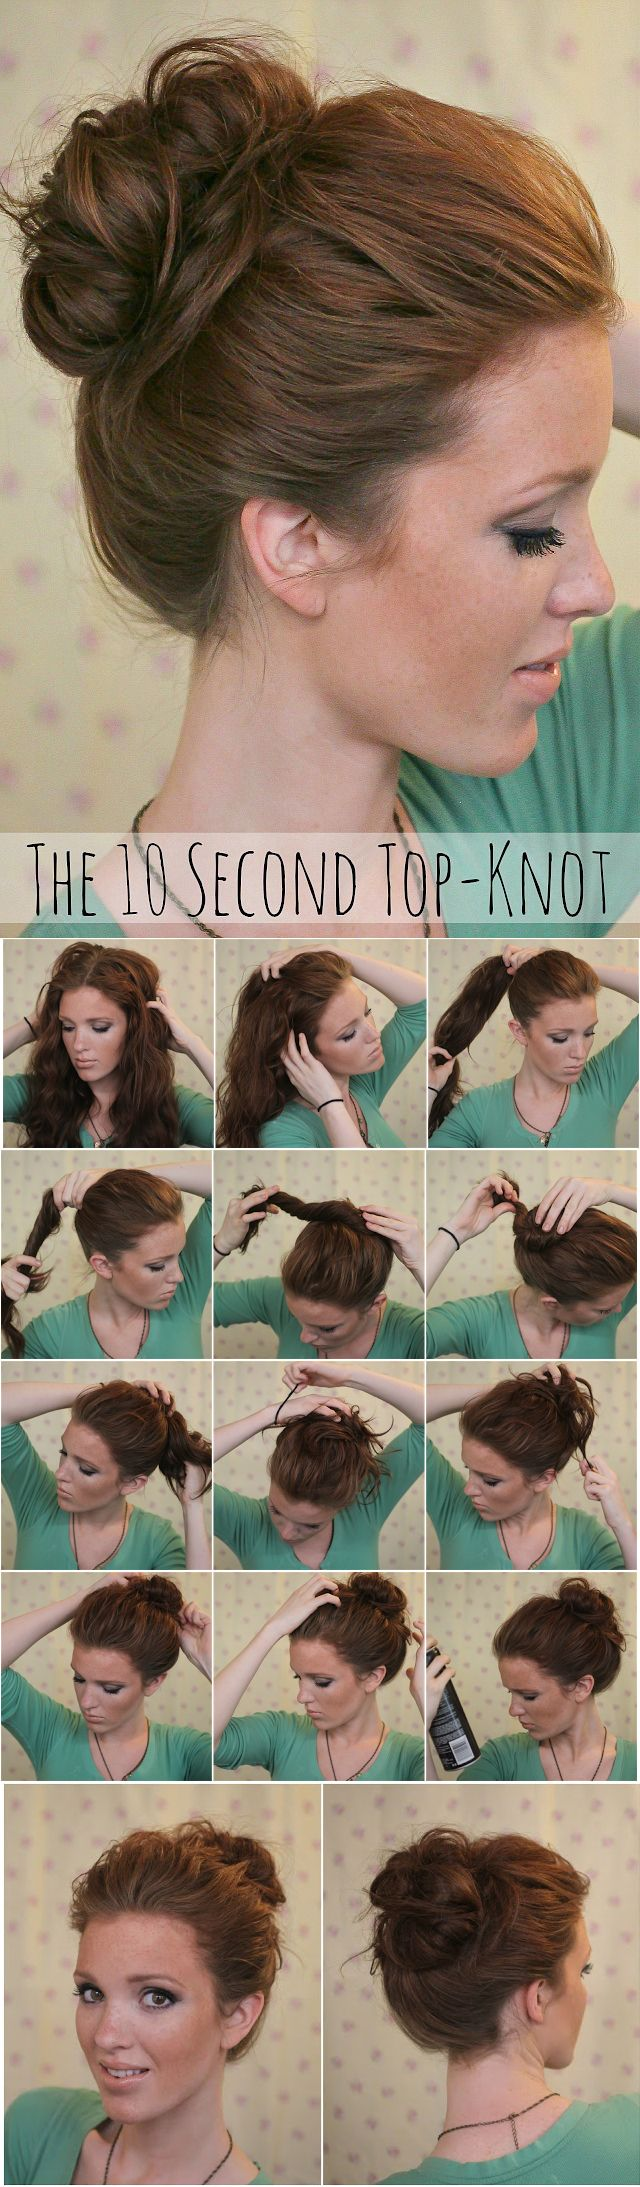 Super Easy Knotted Bun Updo and Simple Bun Hairstyle Tutorials, she makes it look so simple @veronicalewi